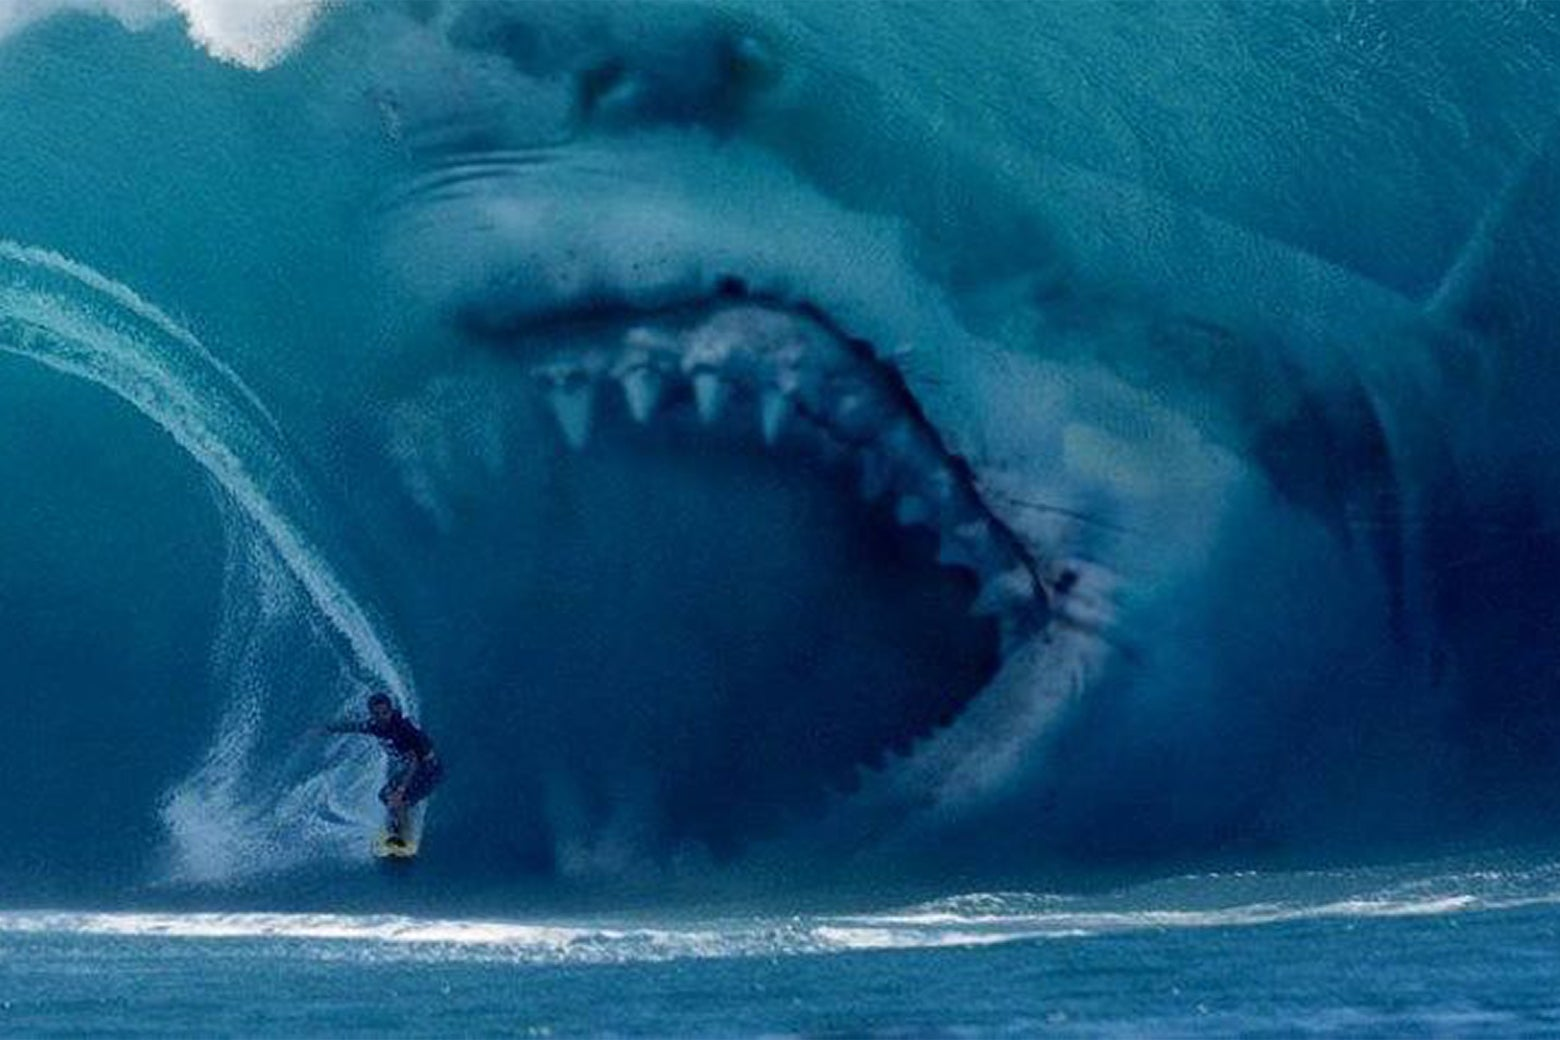 A giant shark eating a surfer in a still from The Meg.